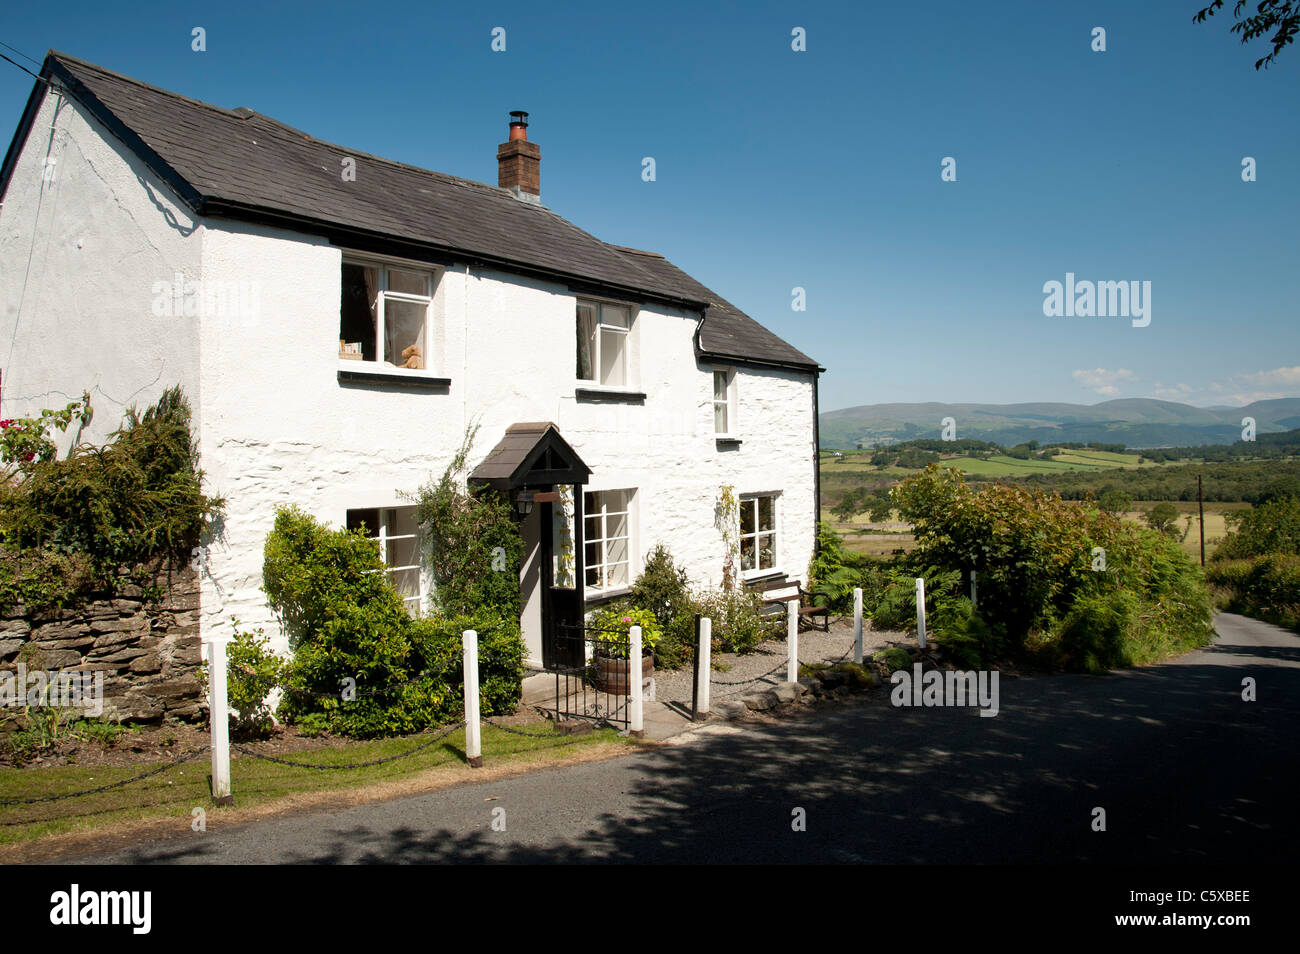 Summer afternoon - A small holiday cottage in the Dyfi valley near , Talybont, Ceredigion, Wales UK - Stock Image